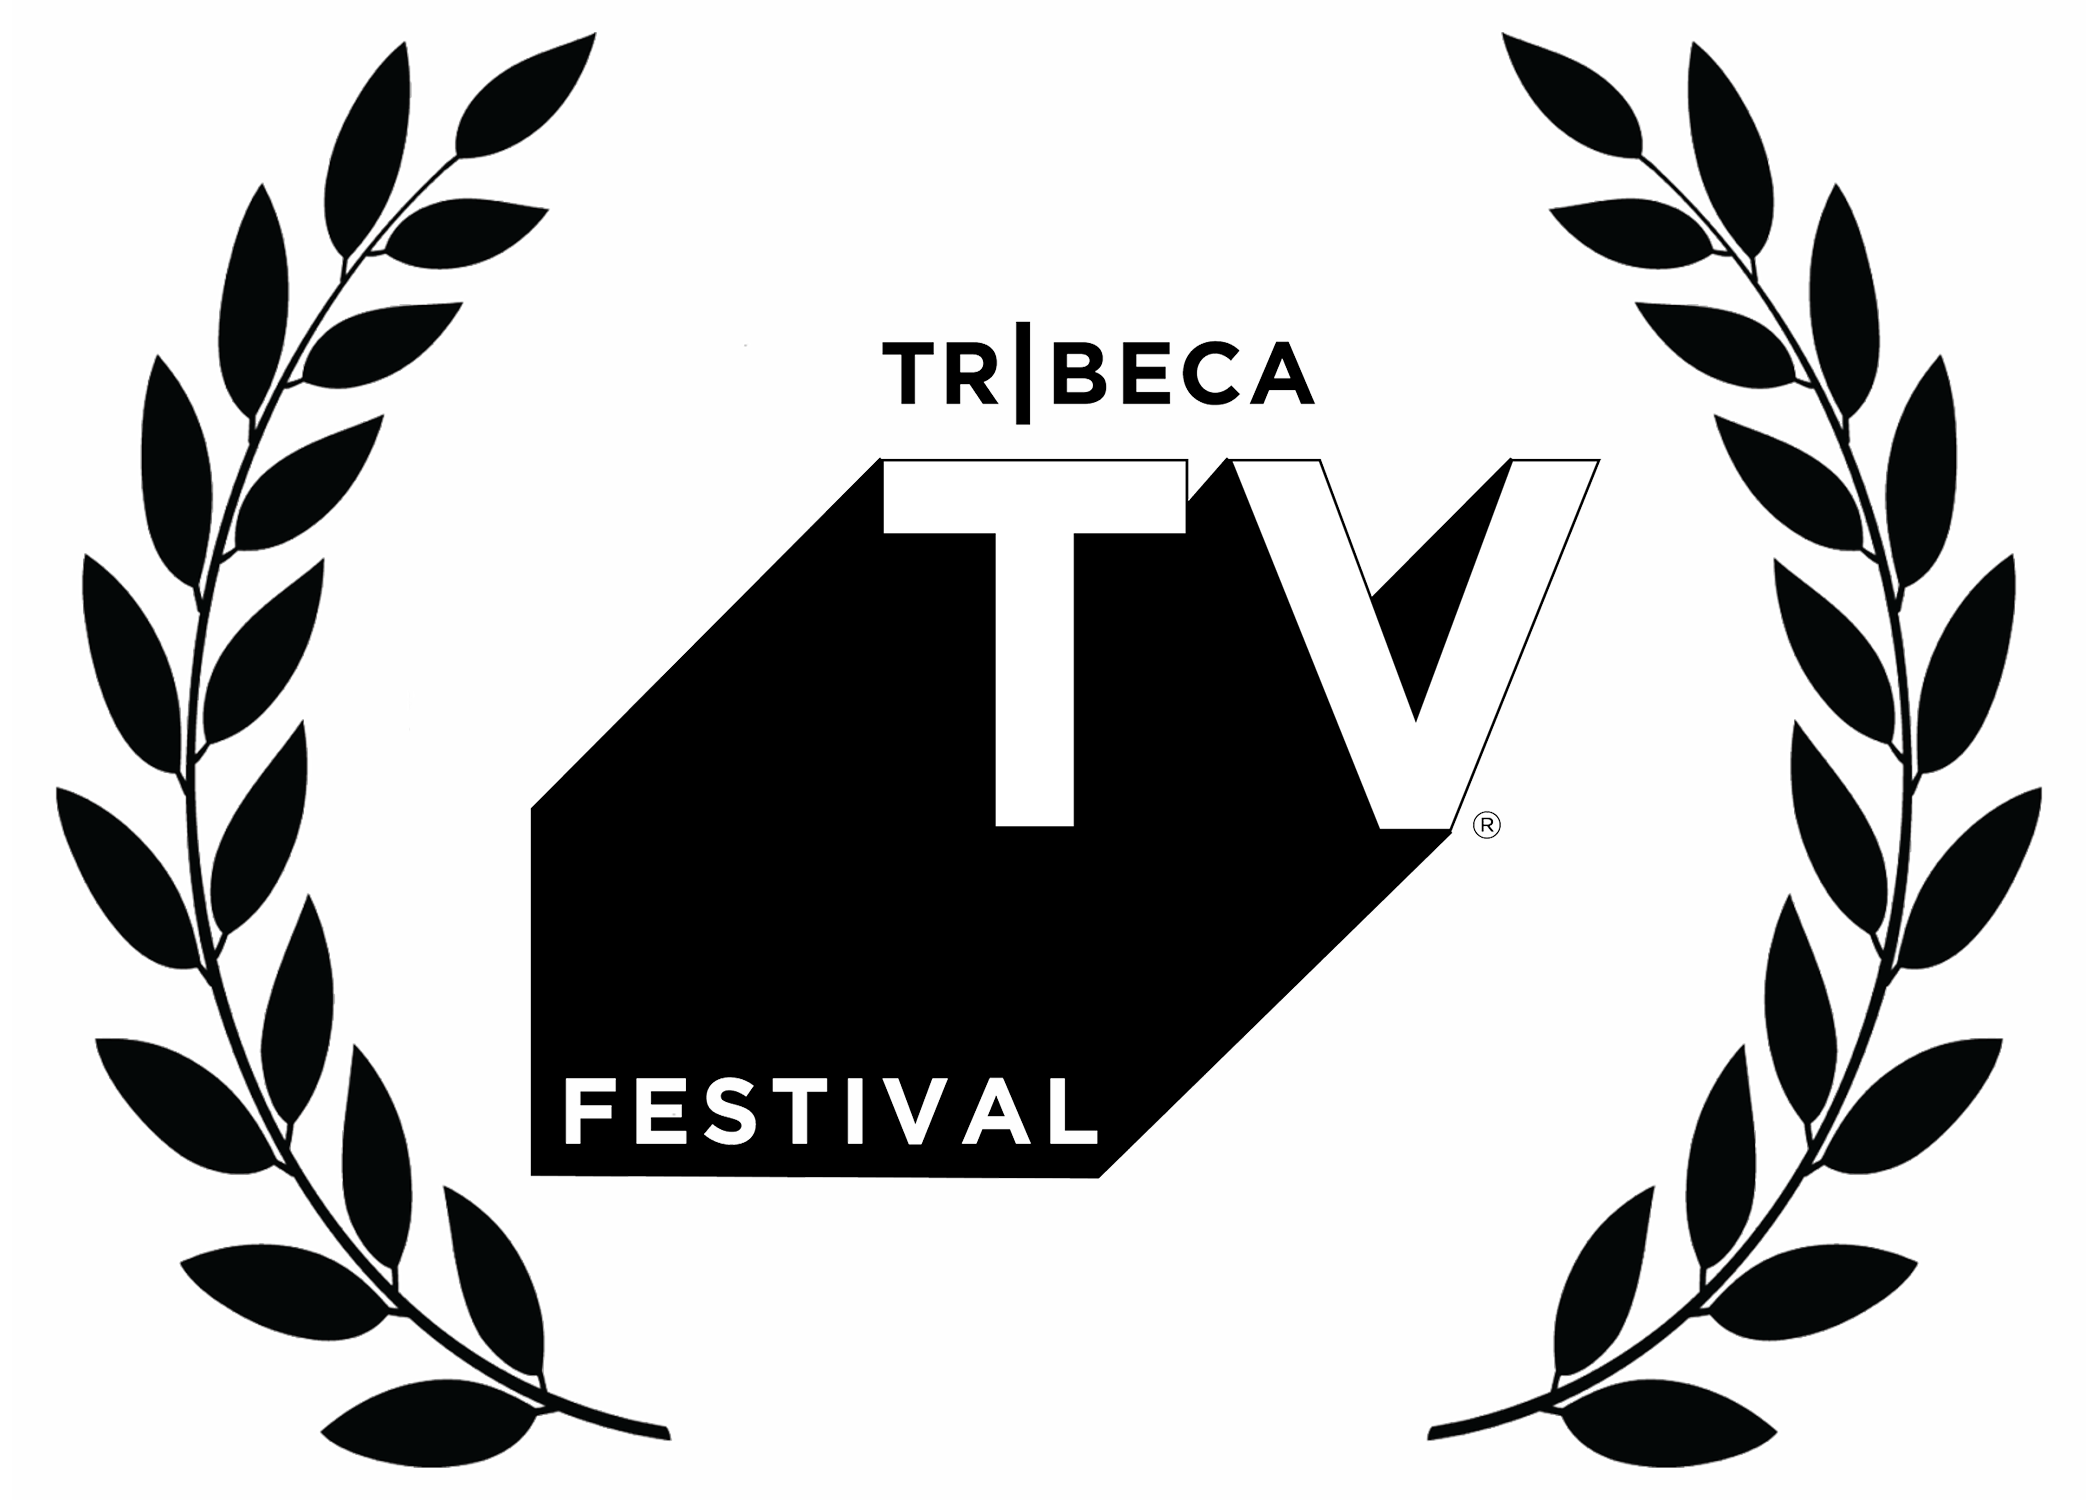 OFFICIAL SELECTION 2018 TRIBECA TV FESTIVAL -